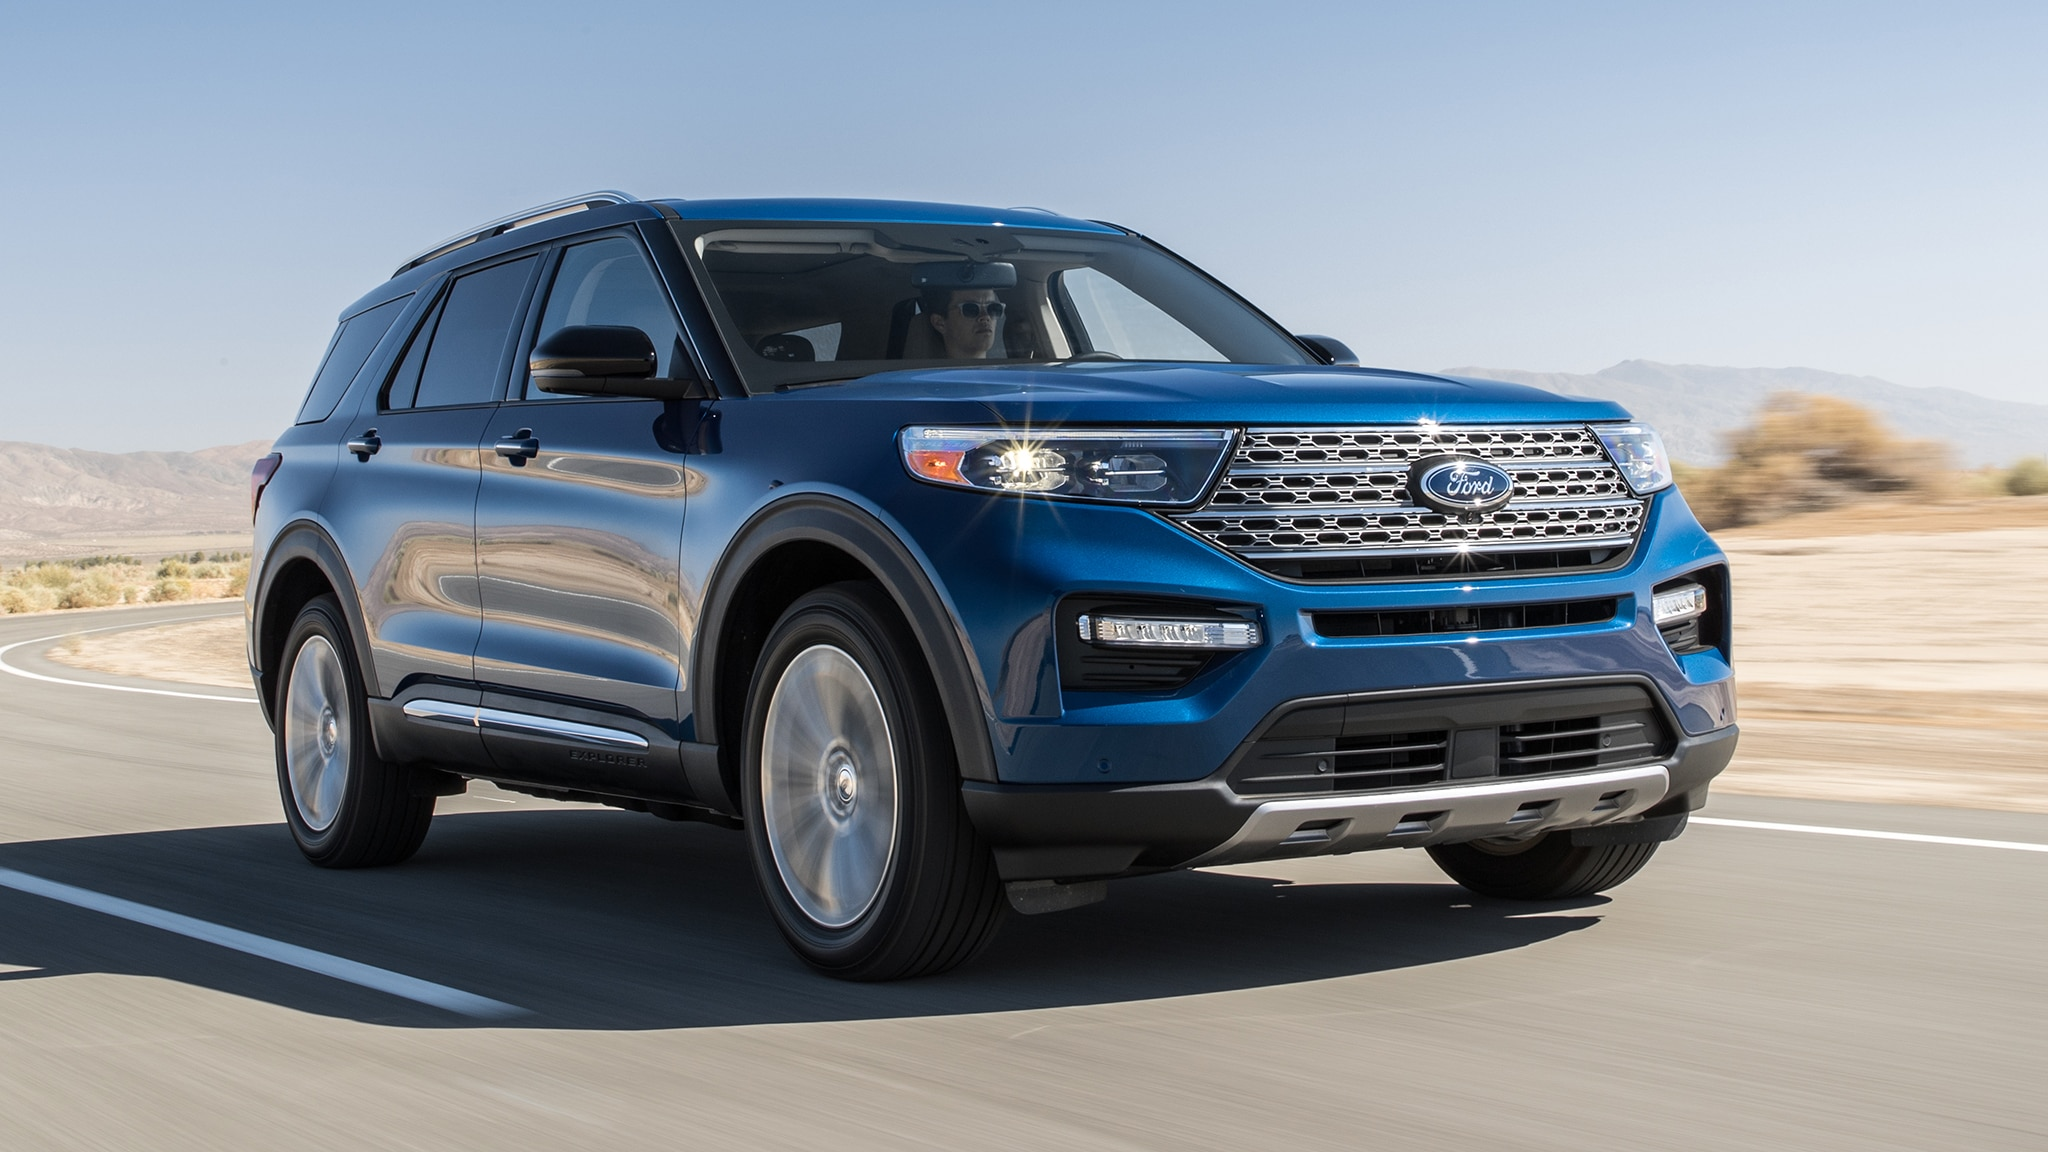 The Least Boring Hybrid Crossover Suvs You Can Buy In 2020